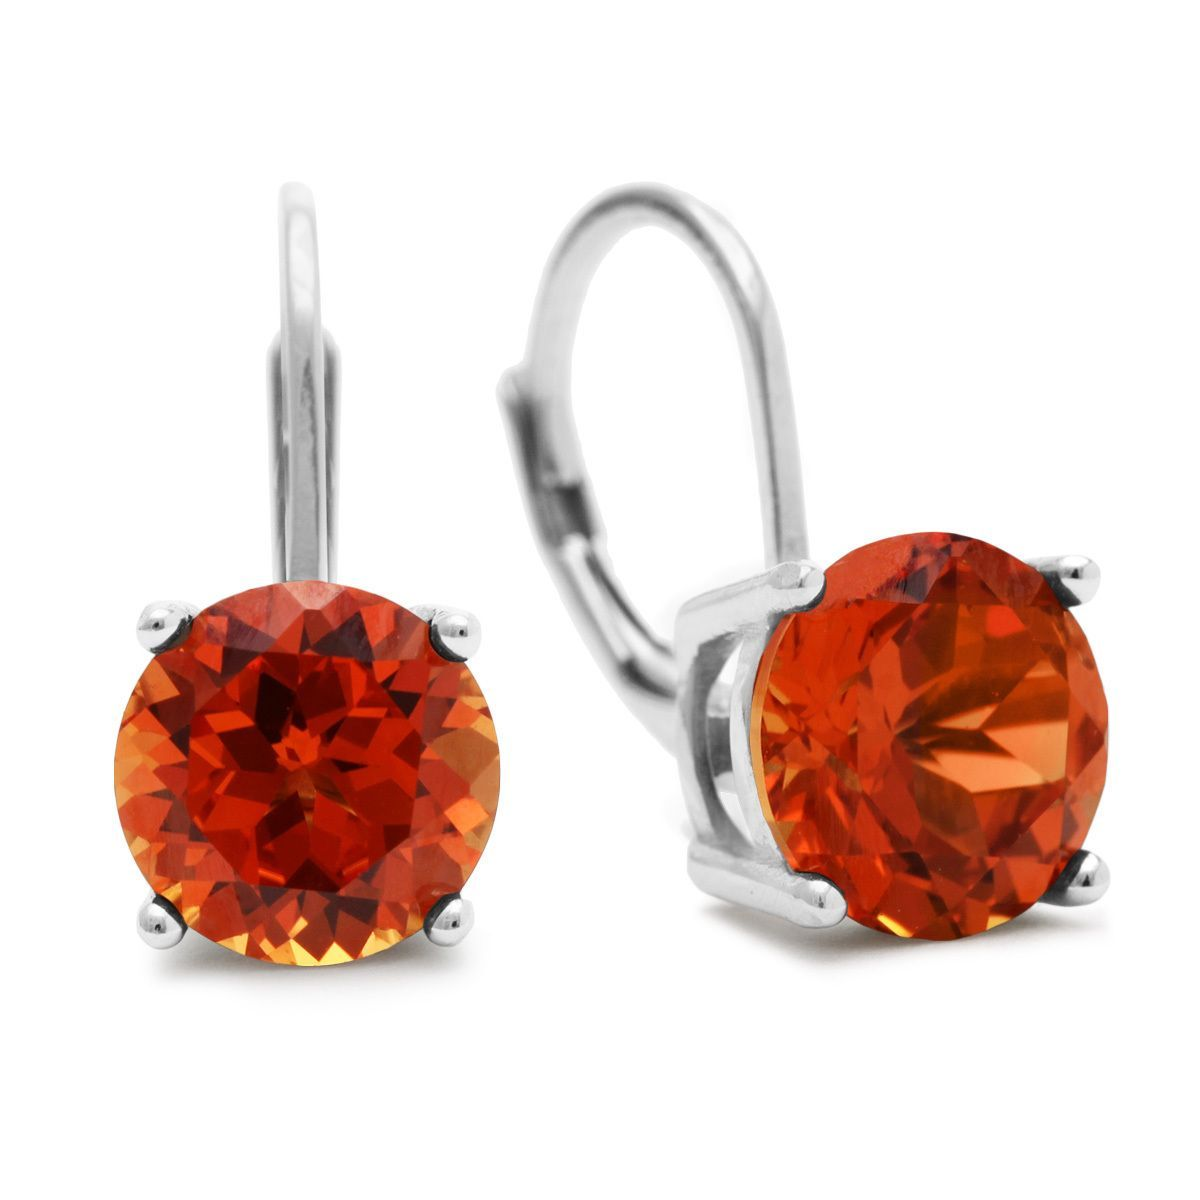 cushion tgw jewelry product on cut earrings over sterling padparadscha overstock in sapphire shipping silver created orders watches carat free